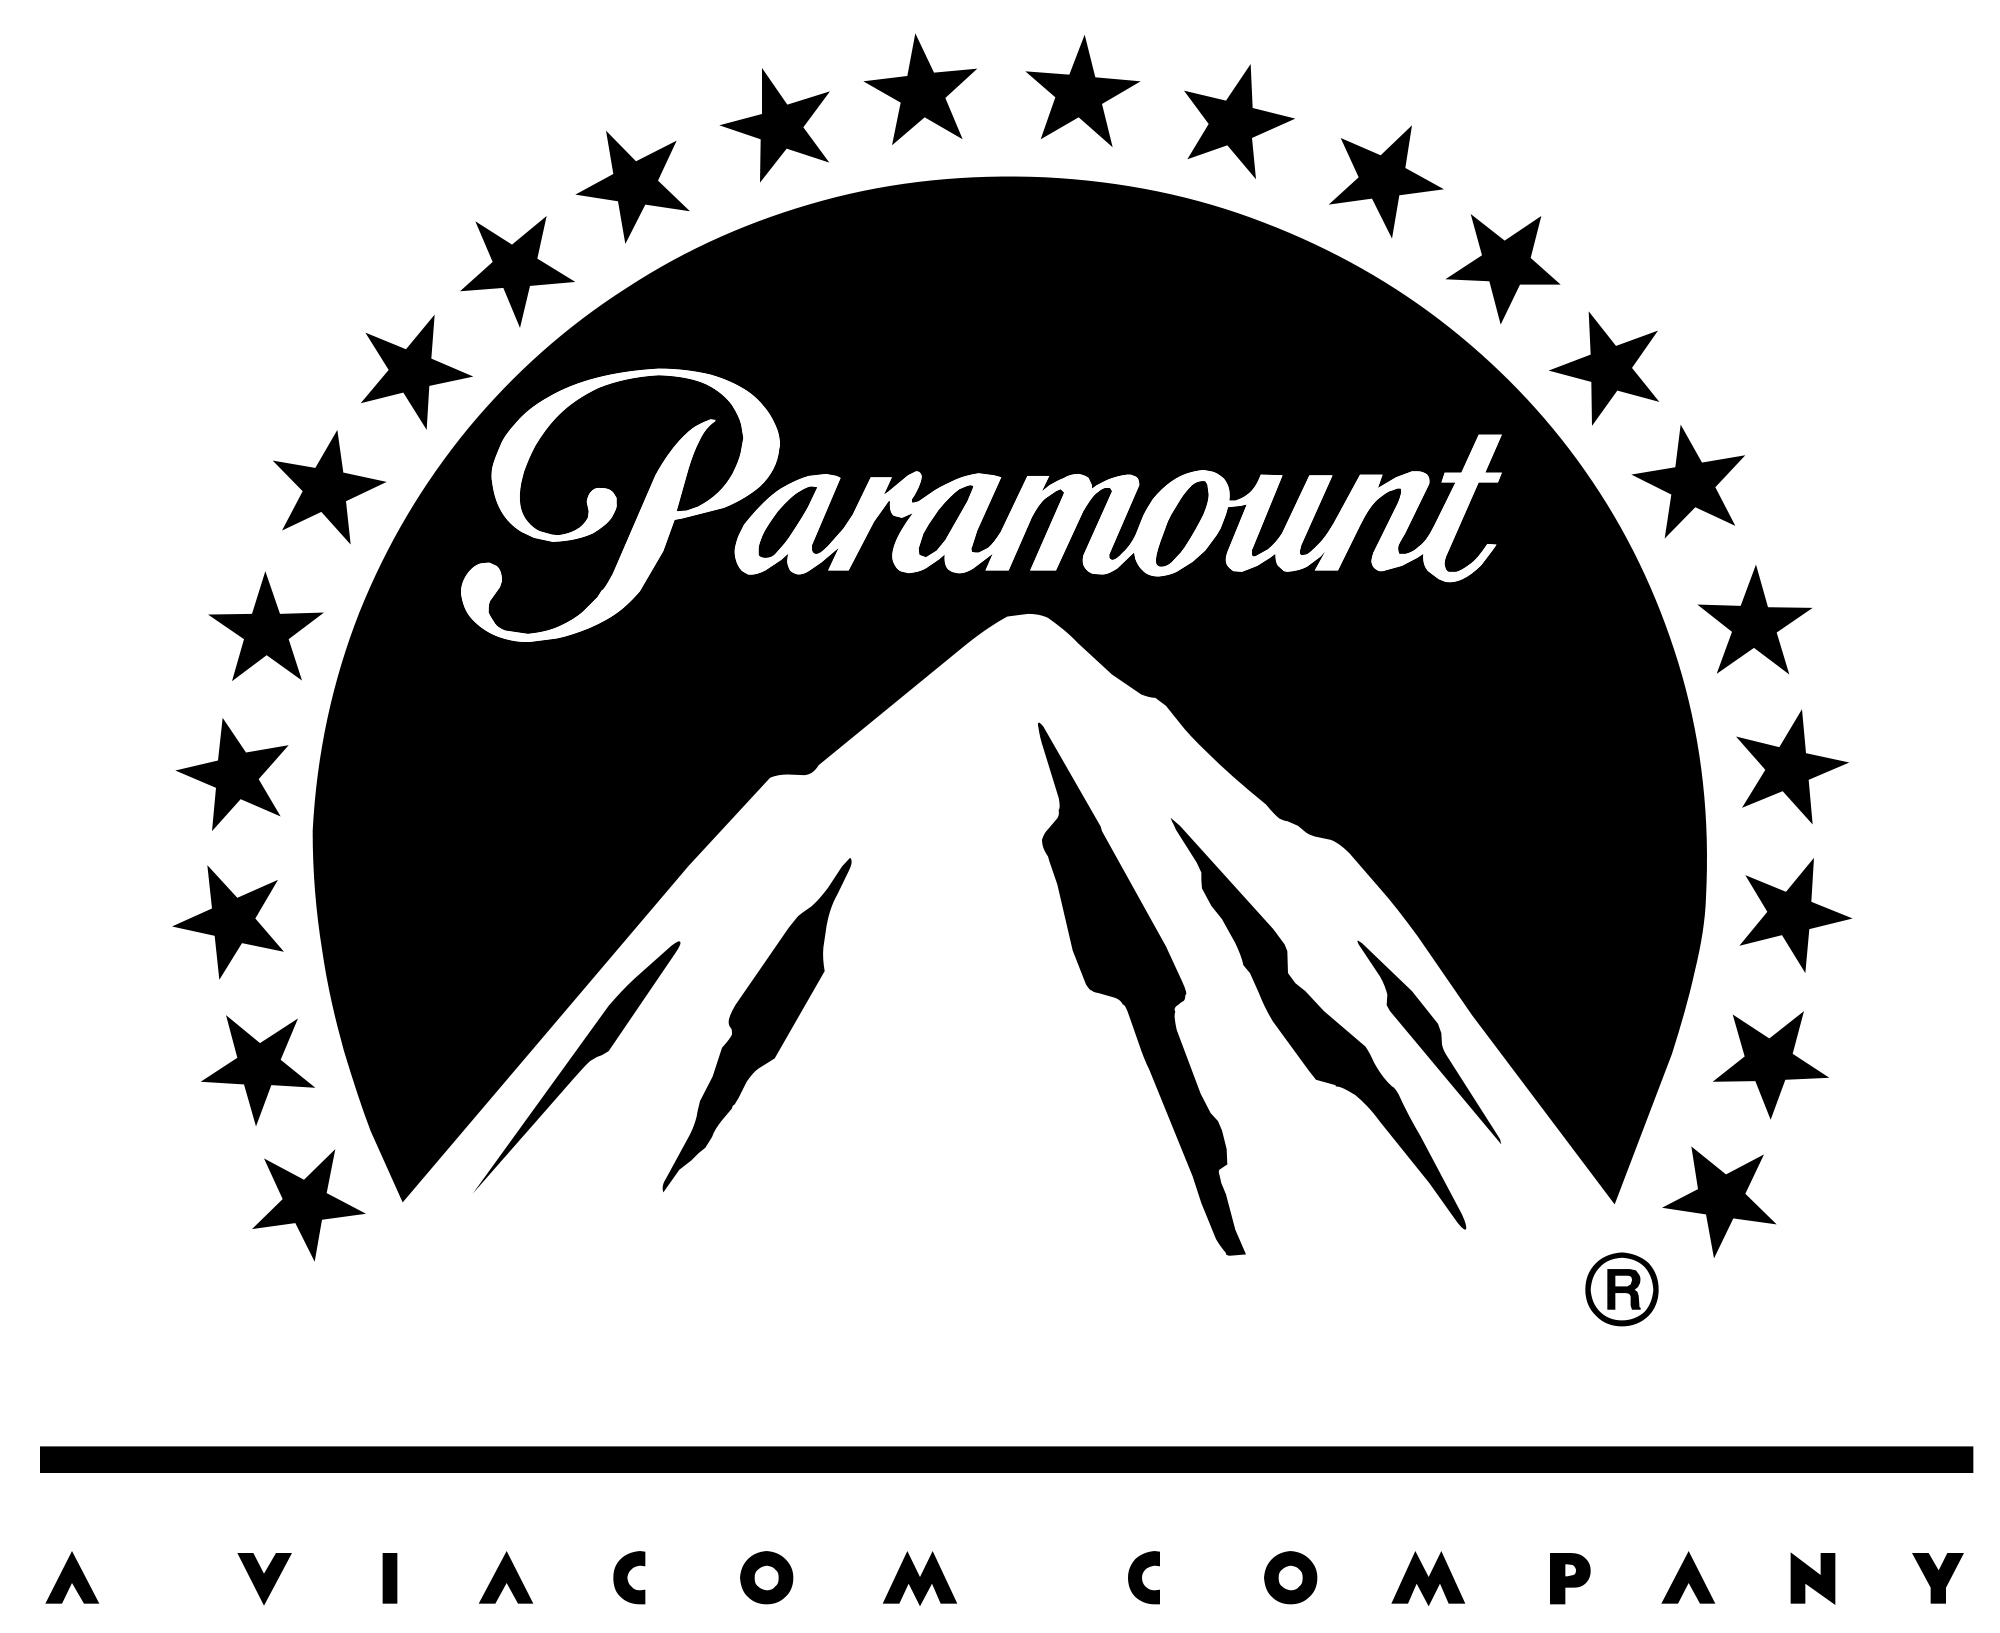 paramount definition